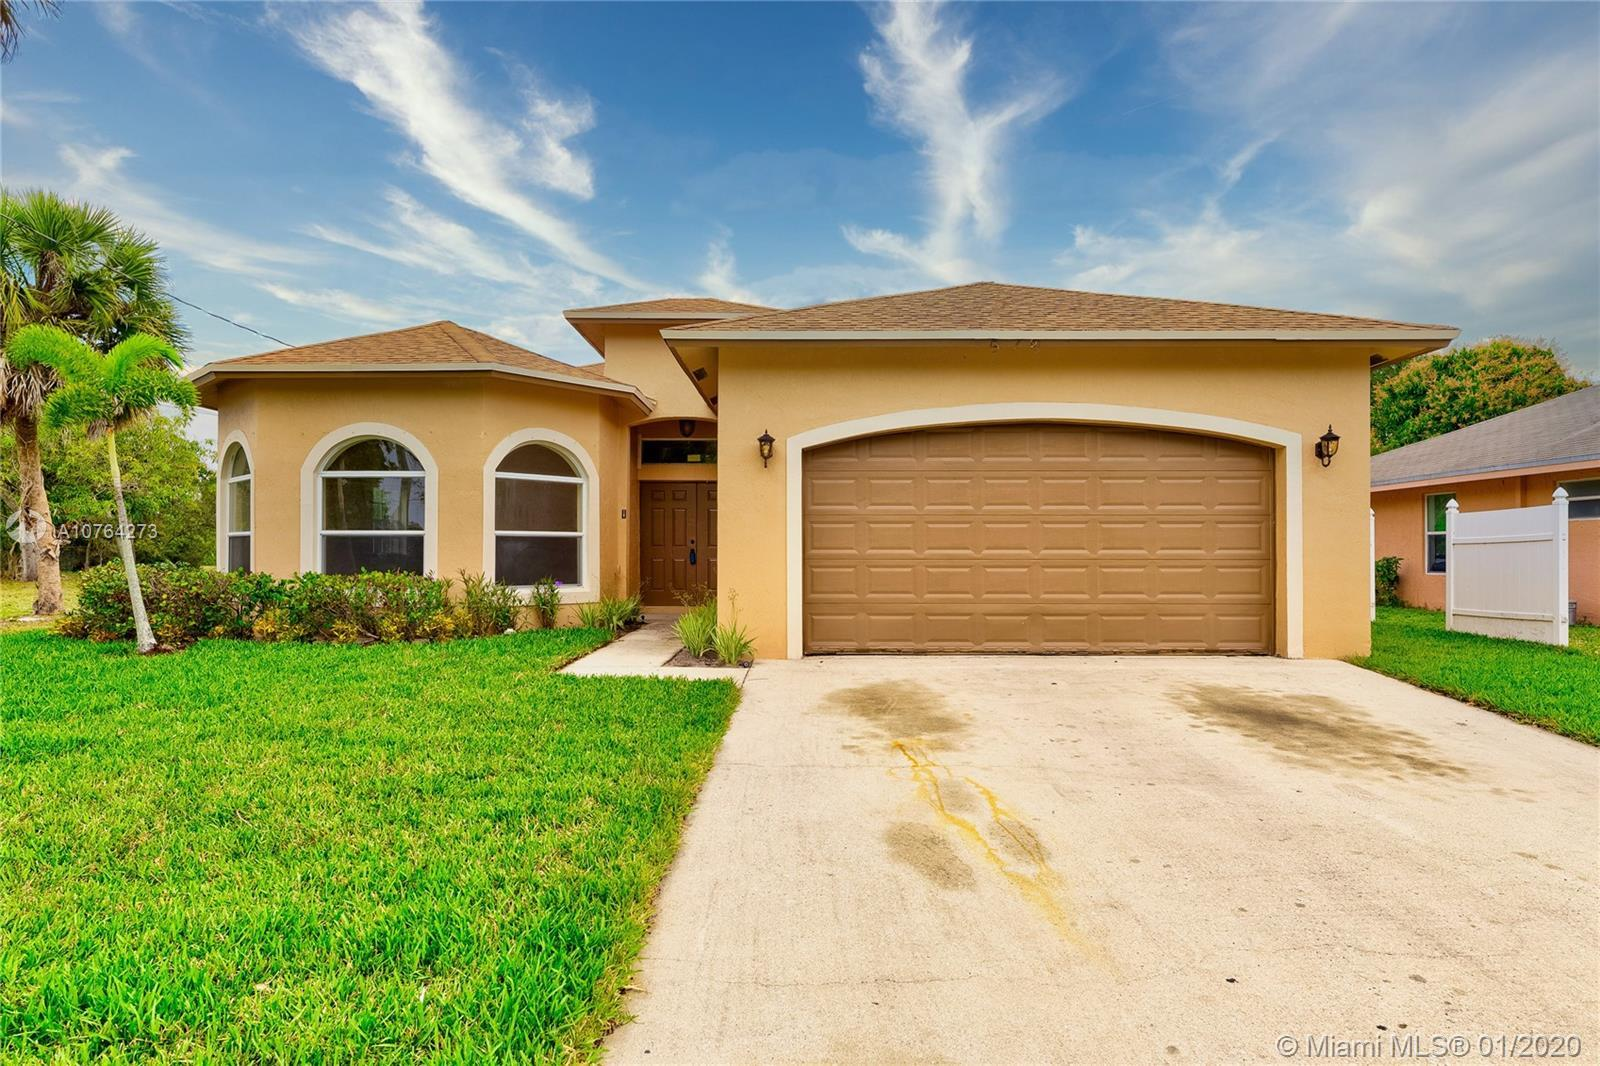 COMPLETELY UPDATED AND MOVE IN READY! UPGRADES Include New paint interior and exterior, new flooring